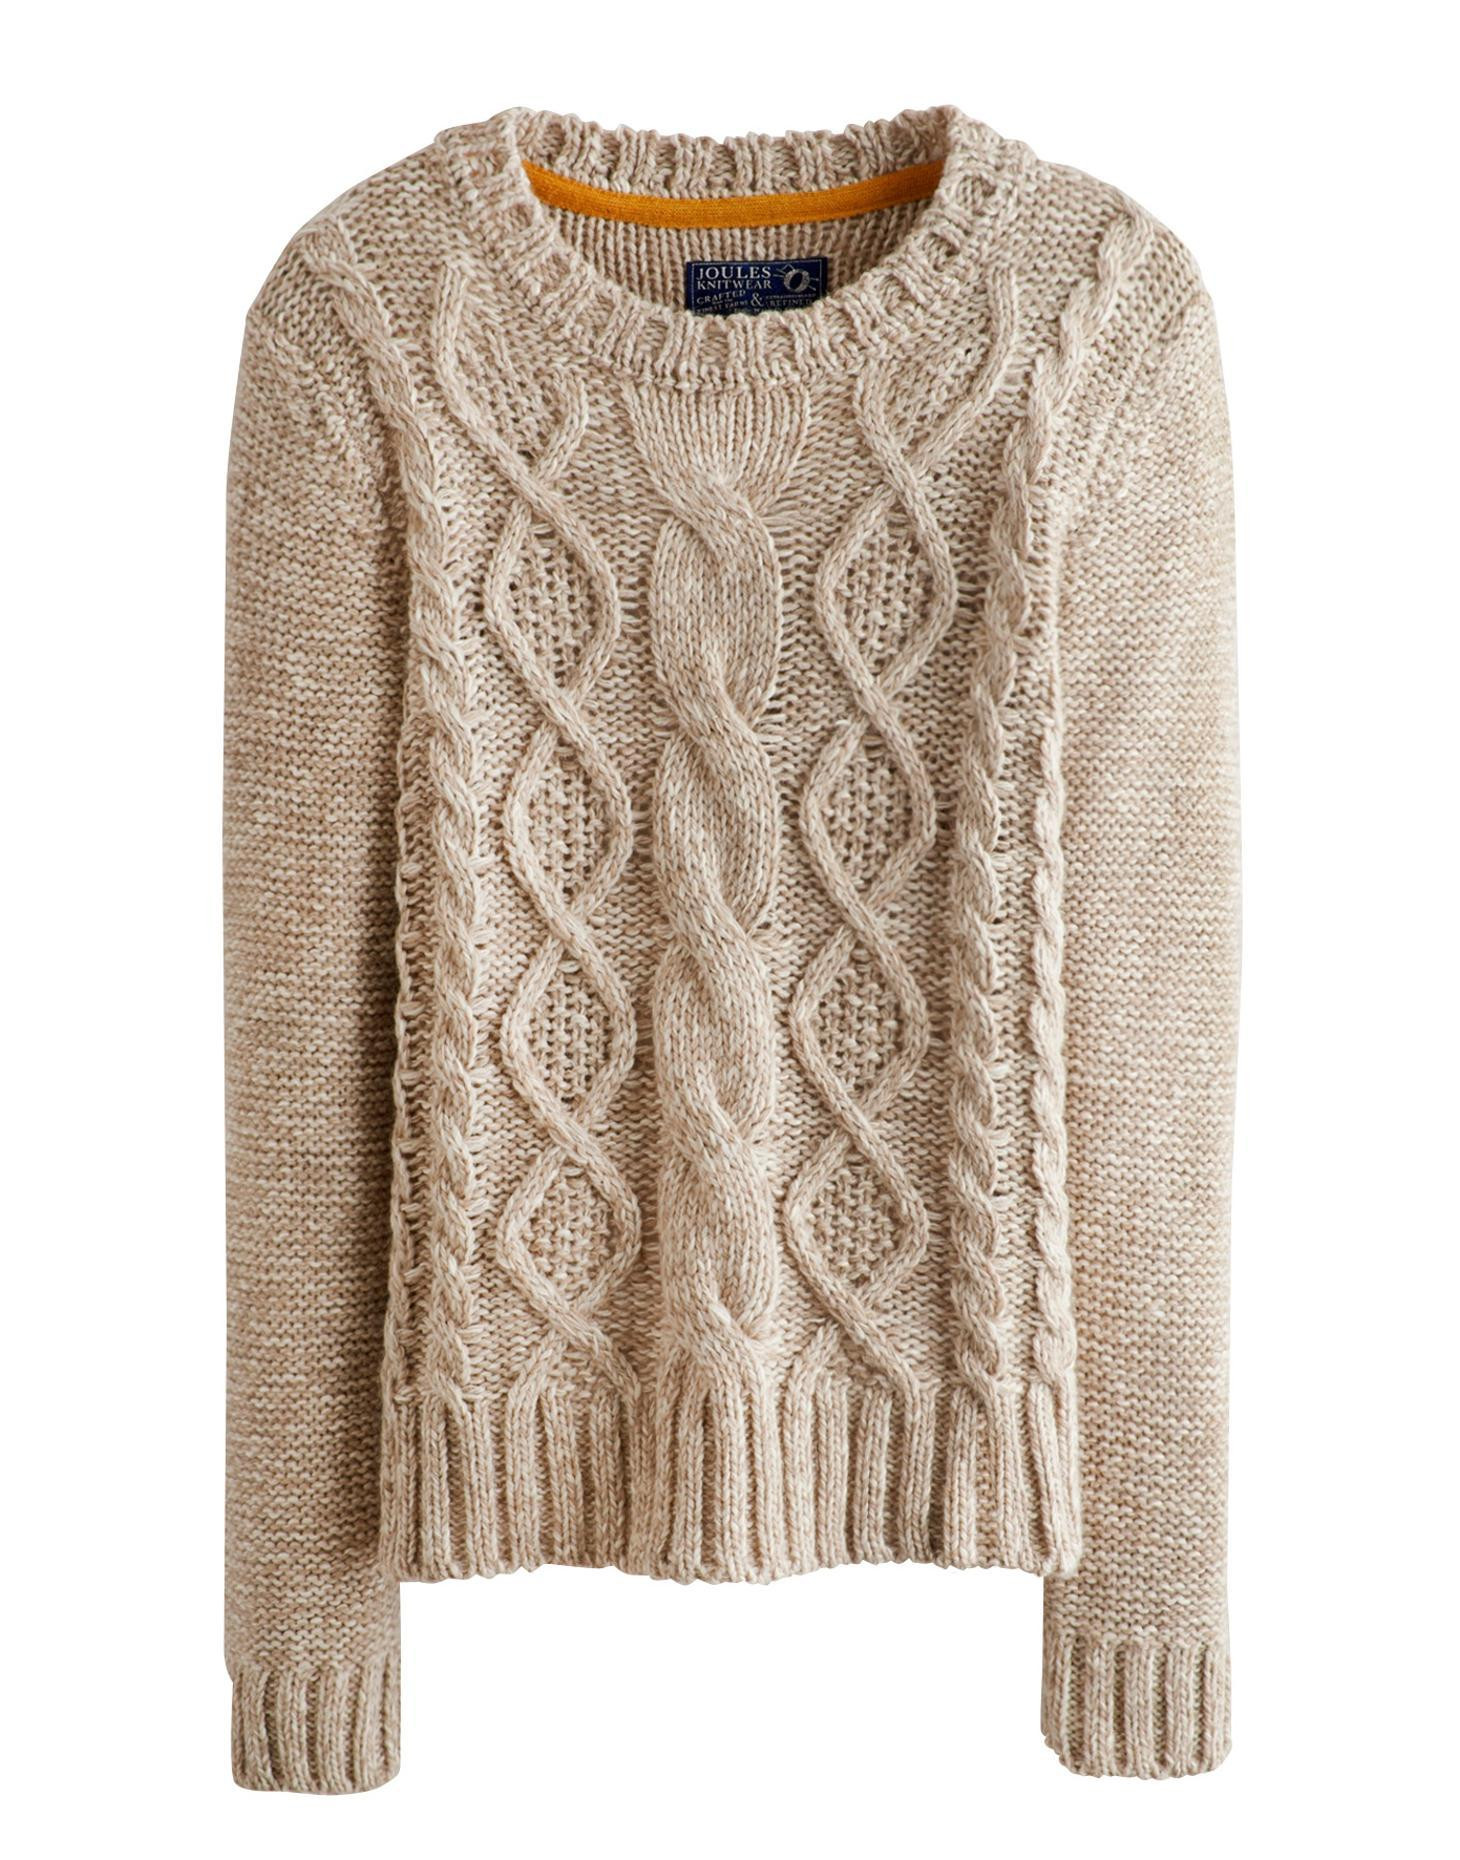 Beautiful Women S Cable Knit Jumper Crochet and Knit Ladies Cable Knit Sweater Of Charming 49 Photos Ladies Cable Knit Sweater